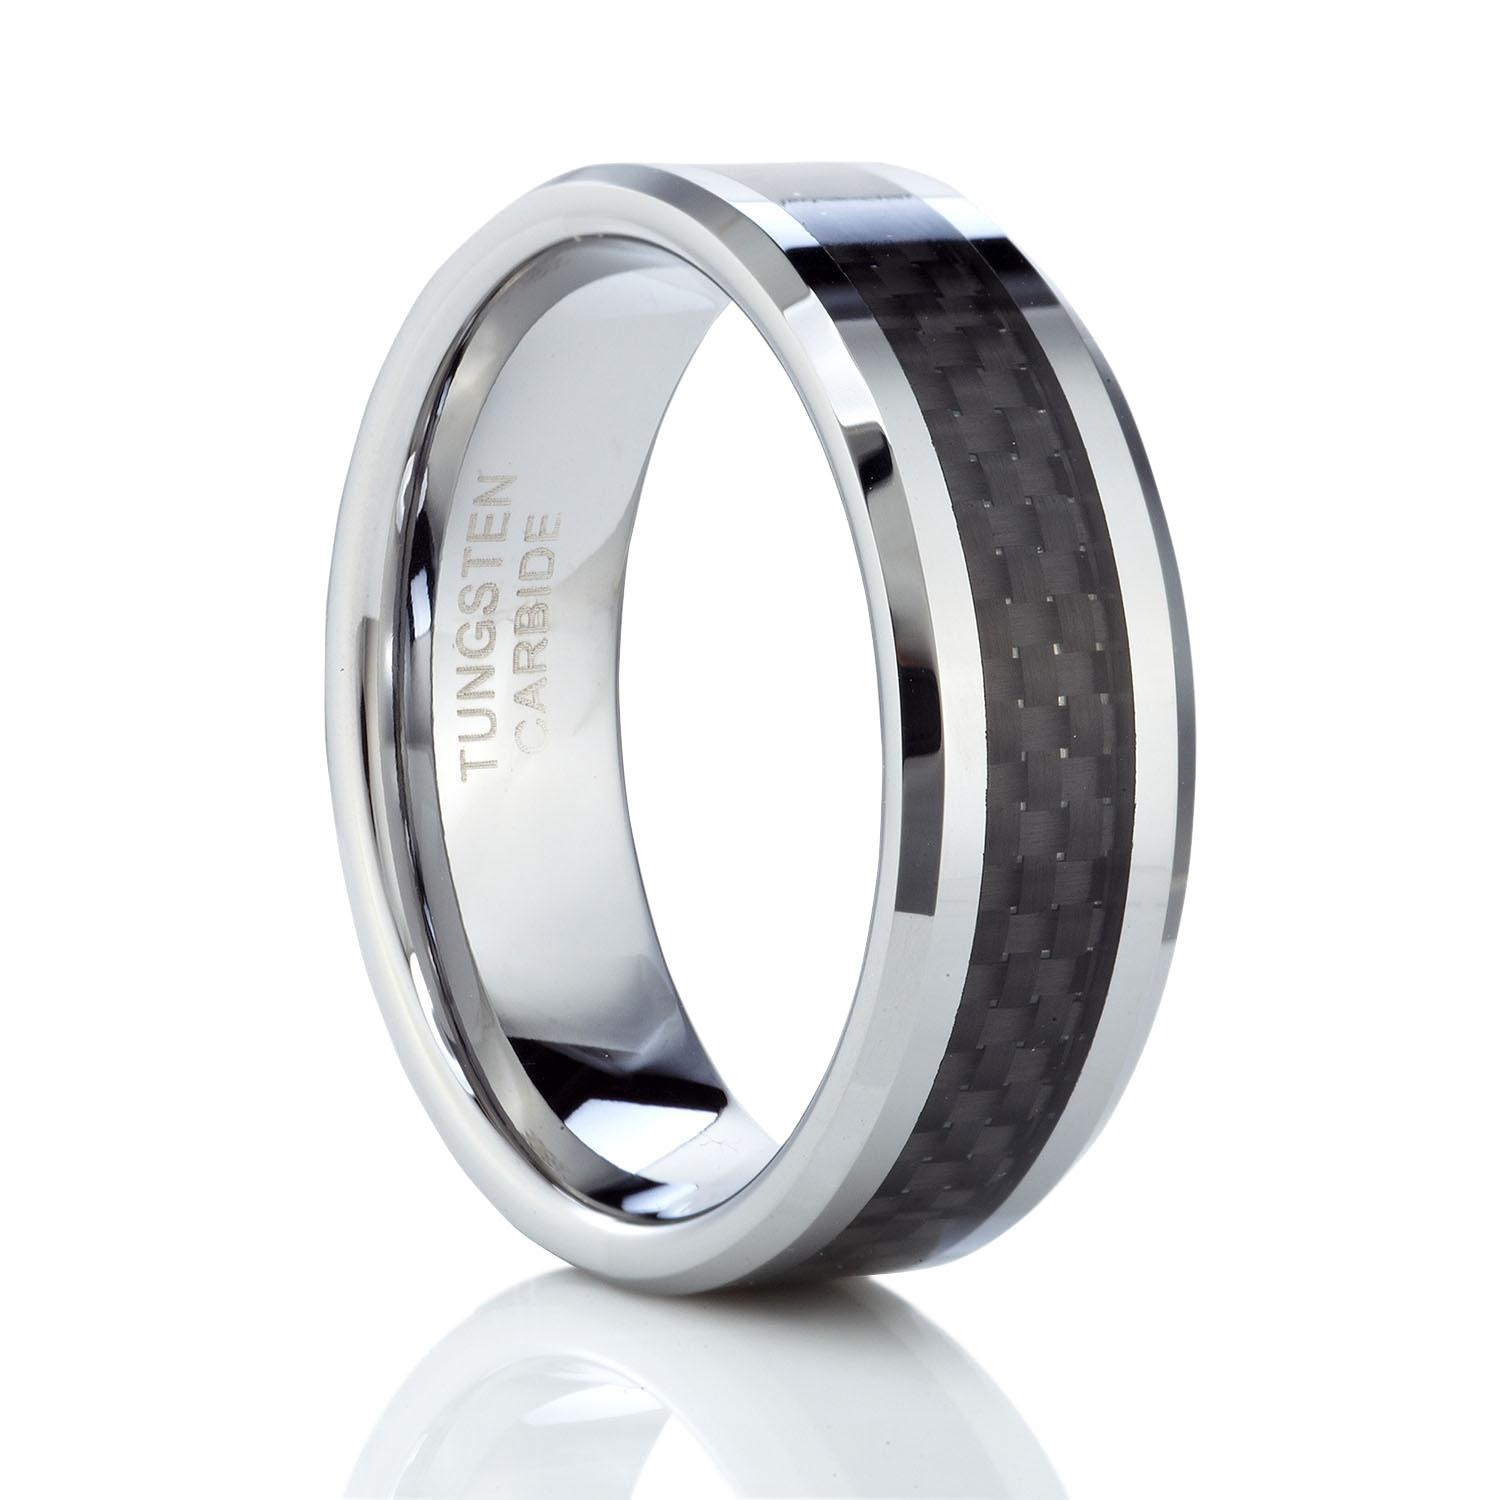 wedding fiber rings amp carbon stainless masonic jewelry black steel for with cool men blue